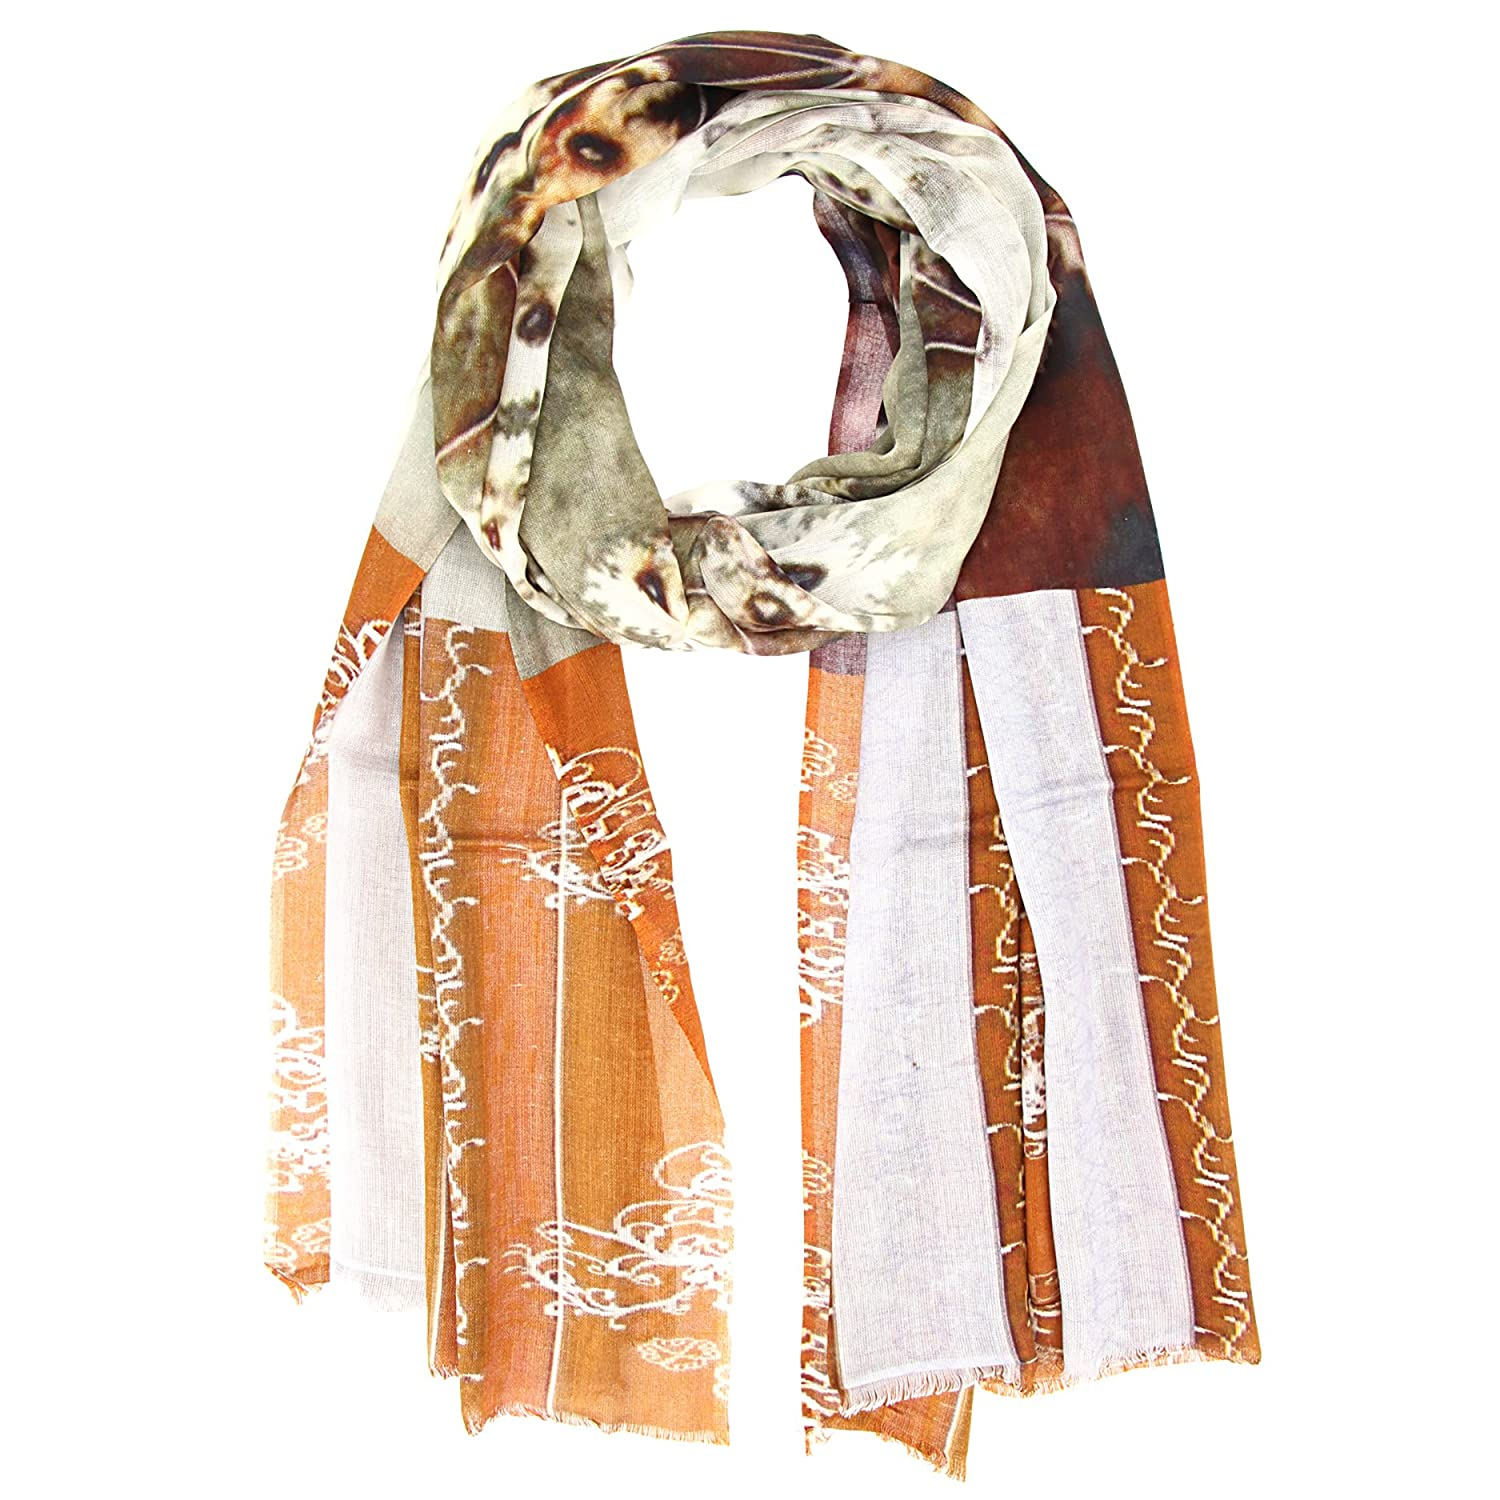 Multicolour Fashion Summer women's summer winter Scarf gift item for her